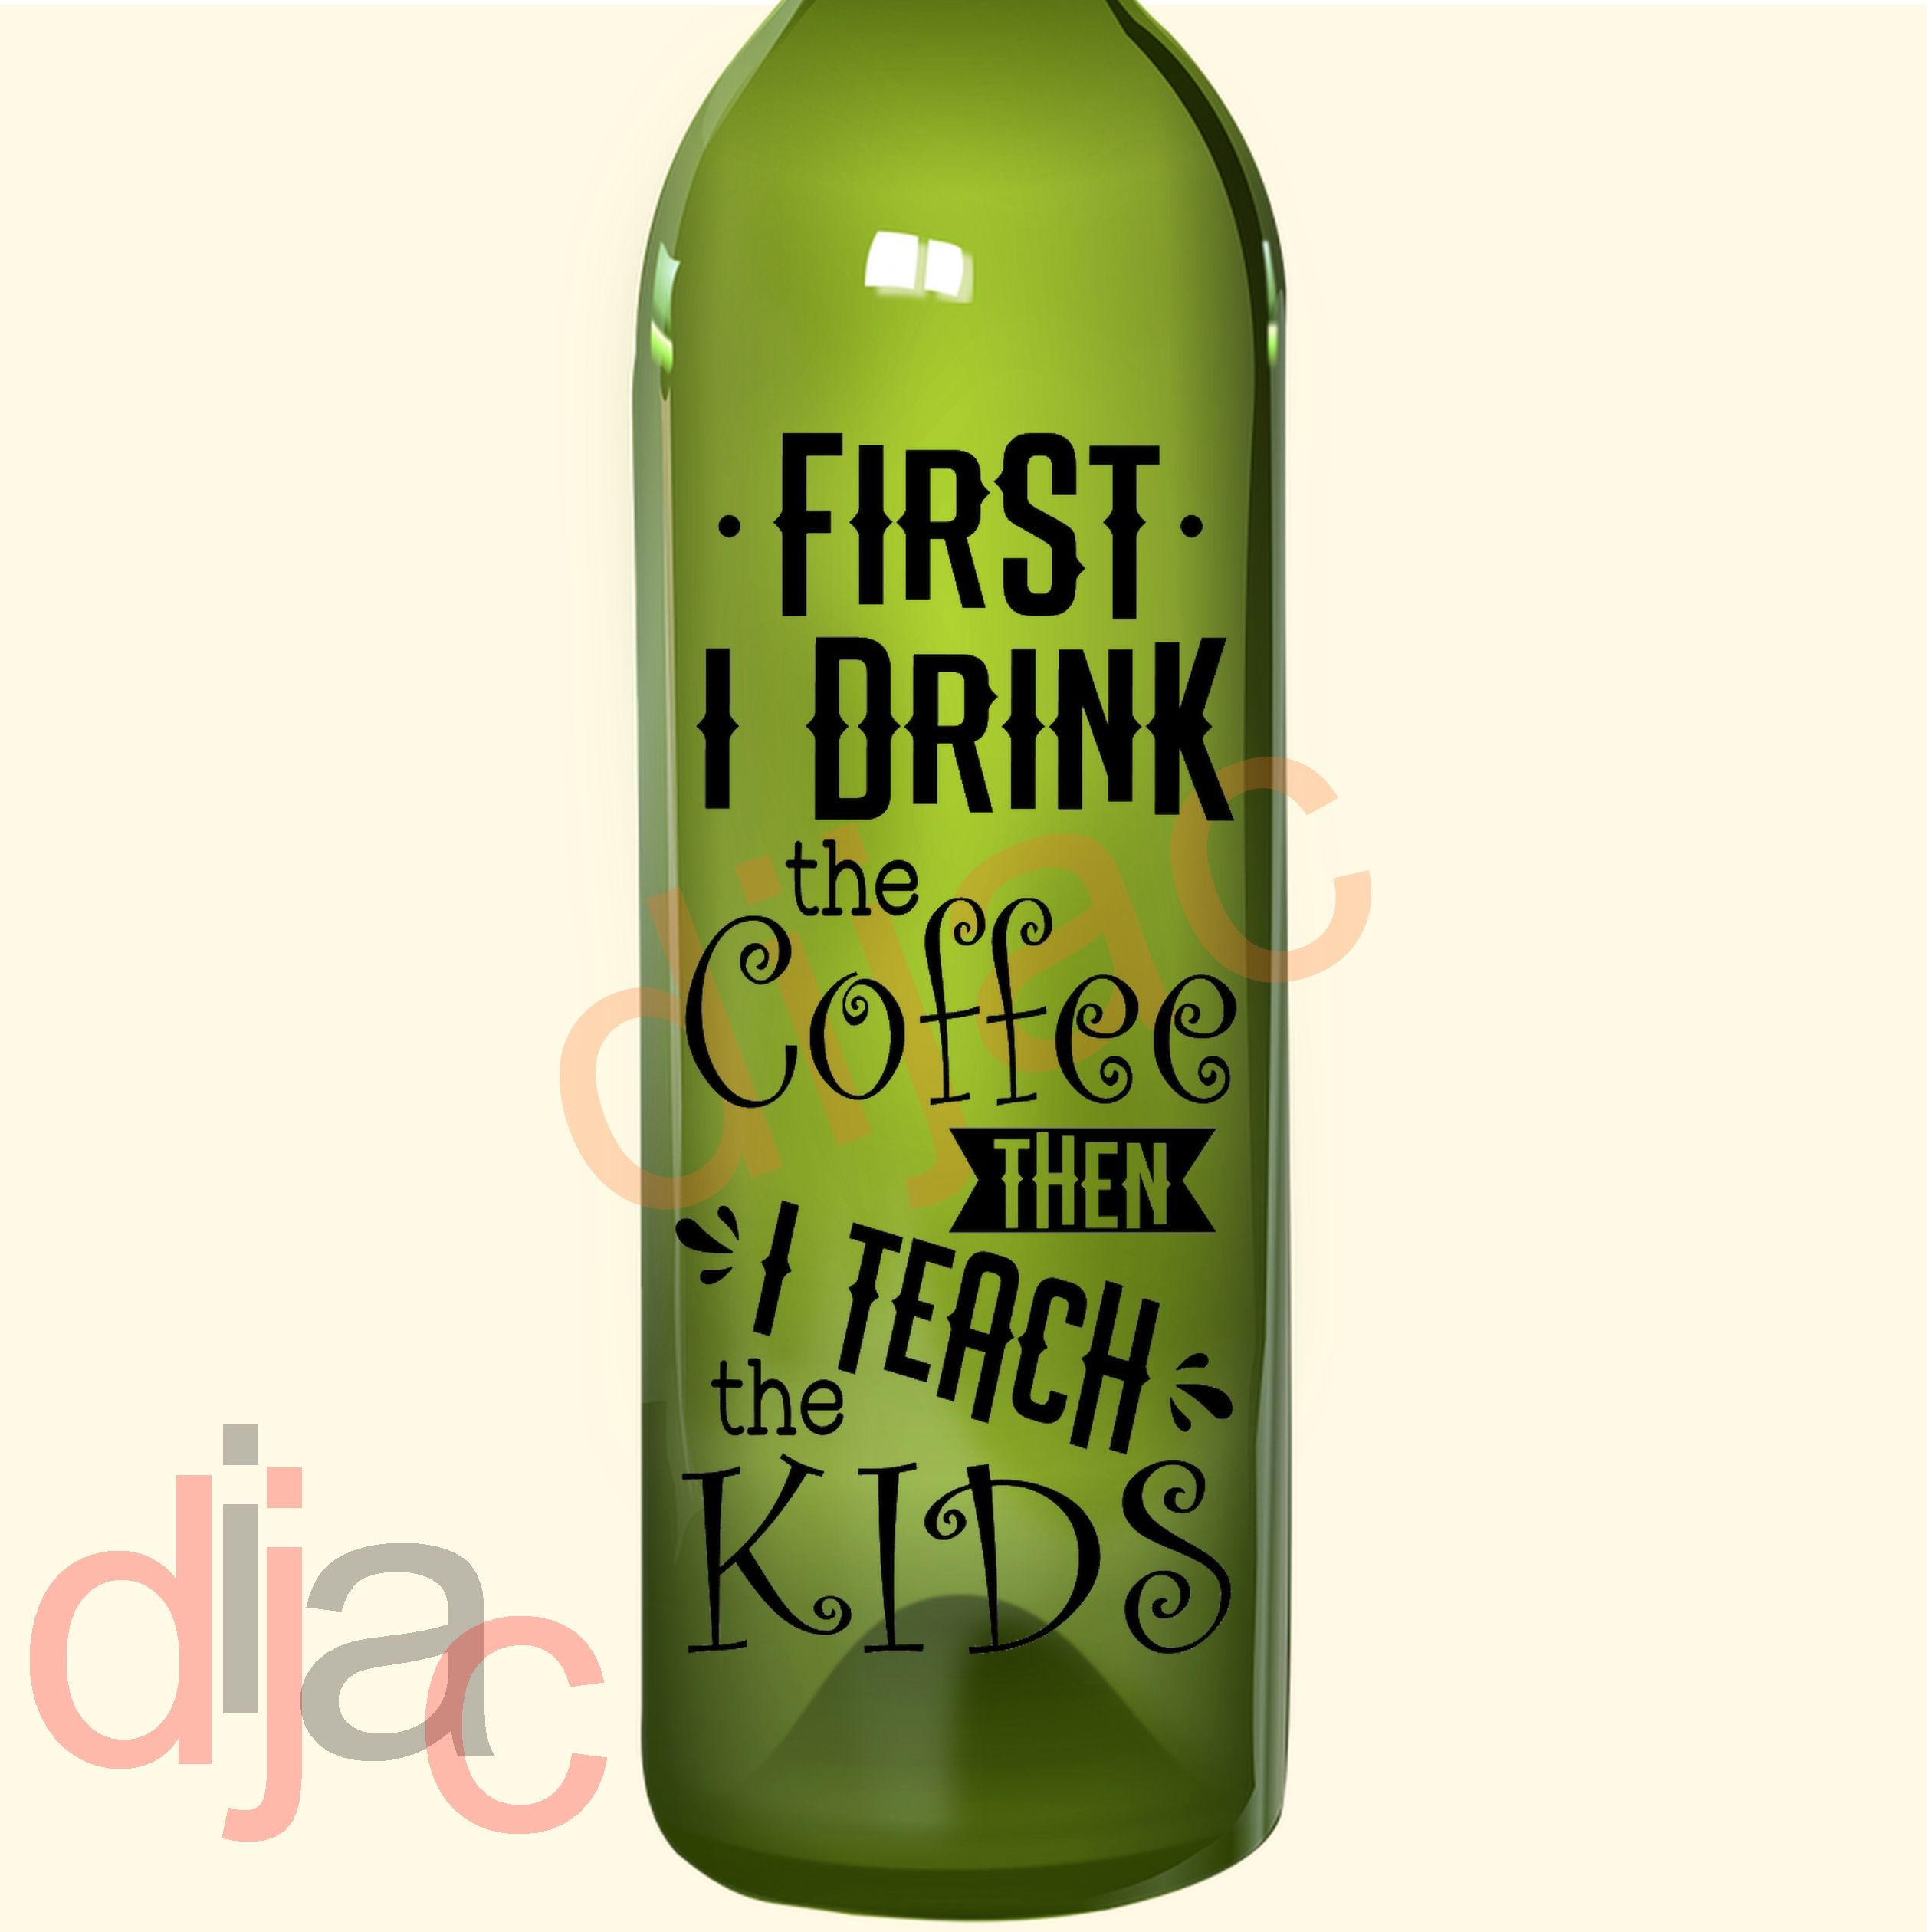 Wine Bottle Decal First I Drink The Coffee... 17.5 x 8 cm